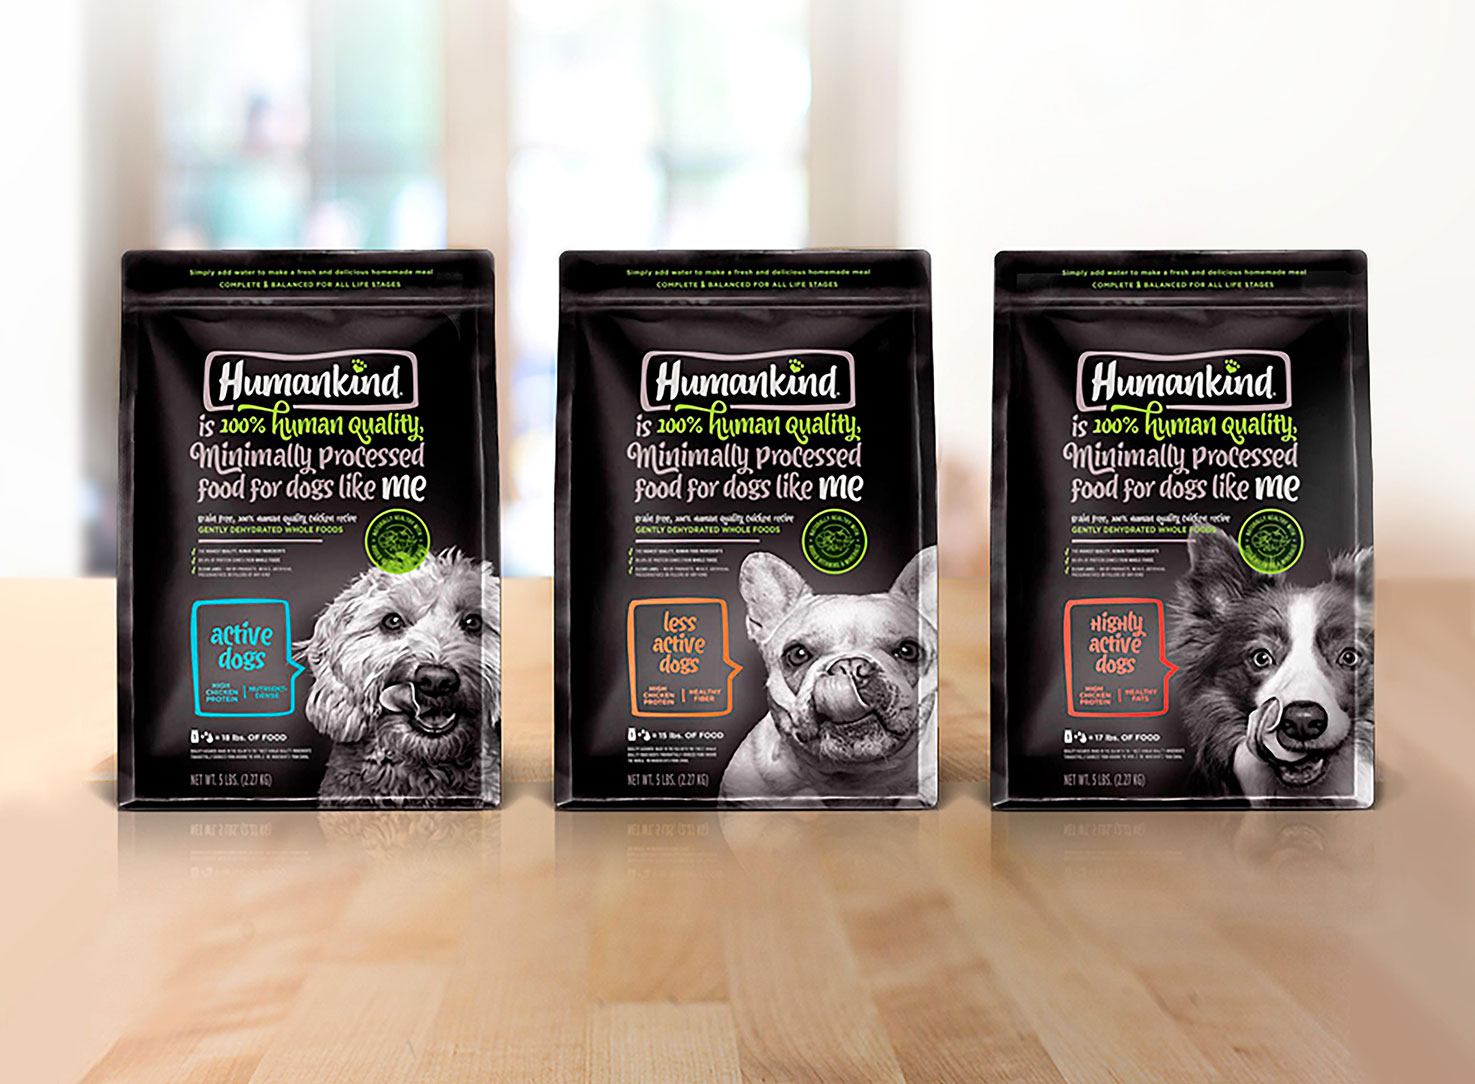 HumanKind Dog Food Packaging